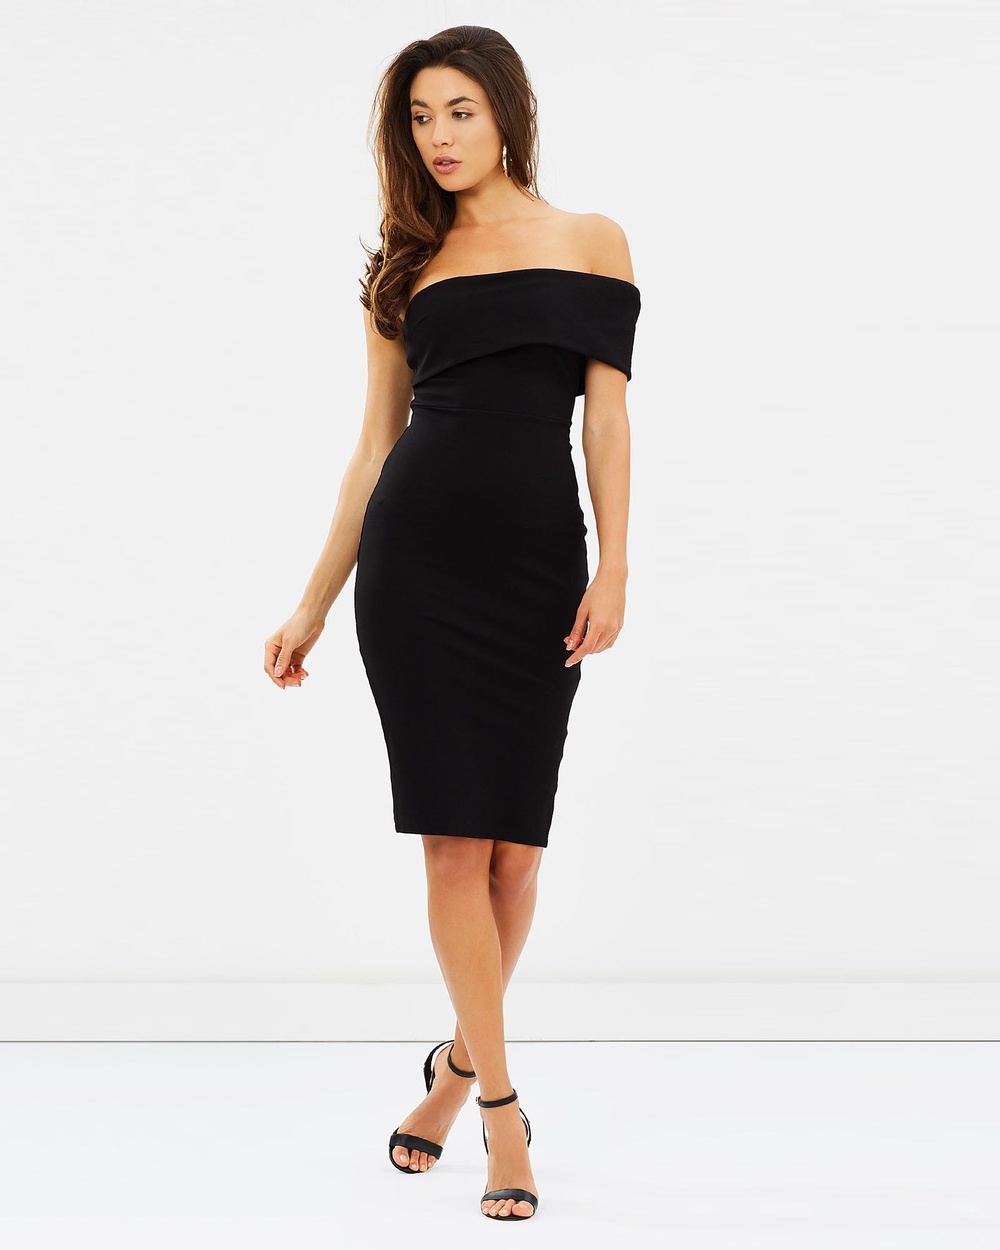 Mossman Just Maybe Dress Bodycon Dresses Black Just Maybe Dress